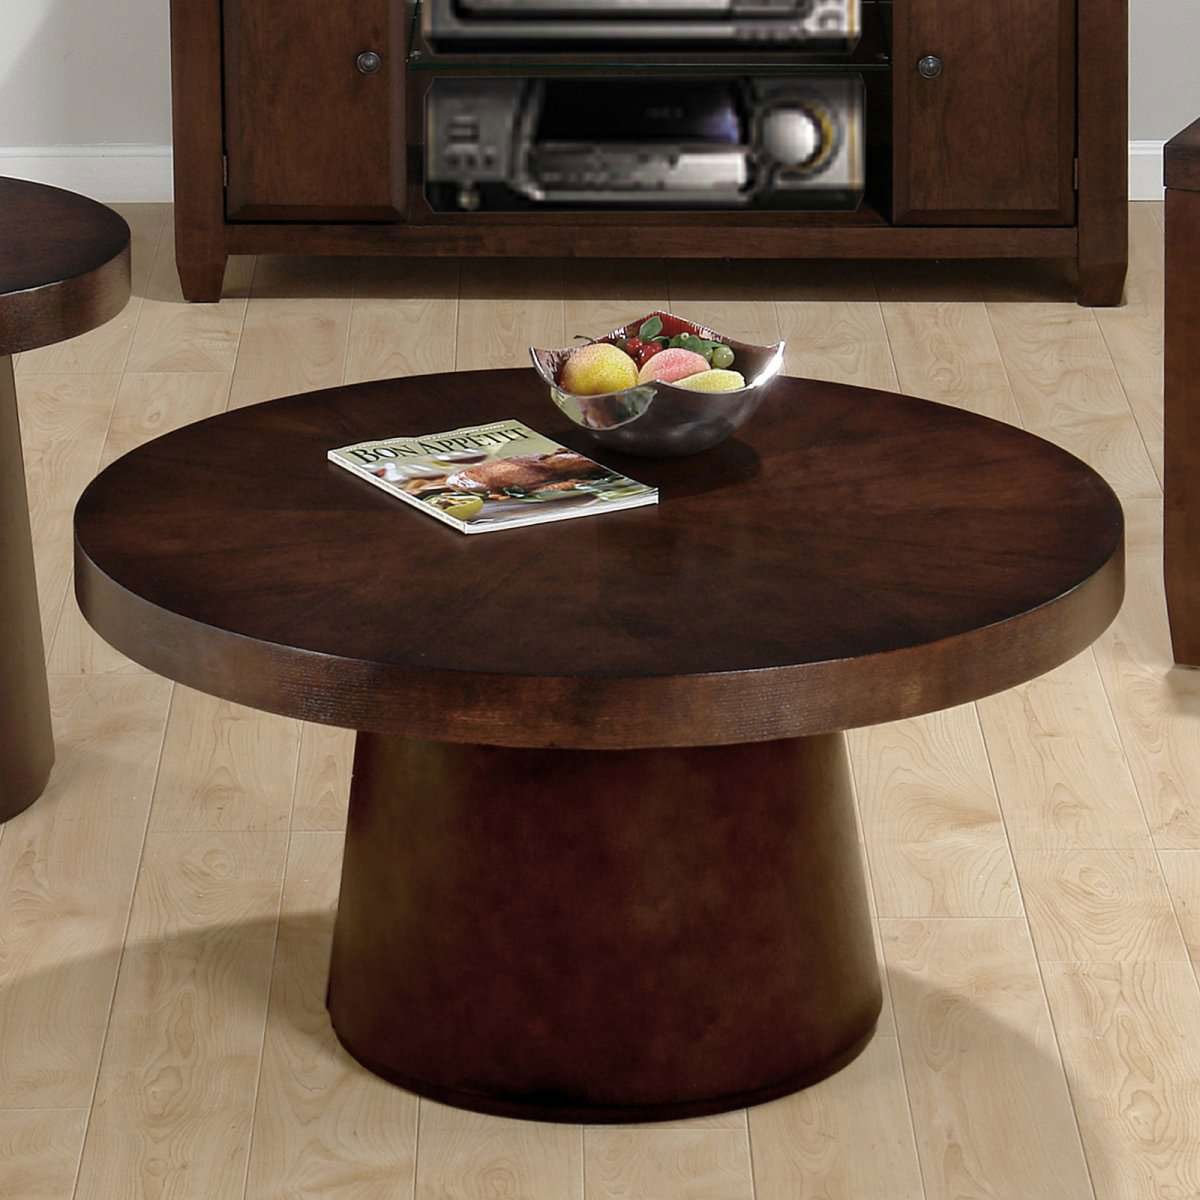 coffee table small round wood cocktail with storage dark end tables consort liberty furniture kmart marble design caramel leather sofa console for hallway narrow black kids pool